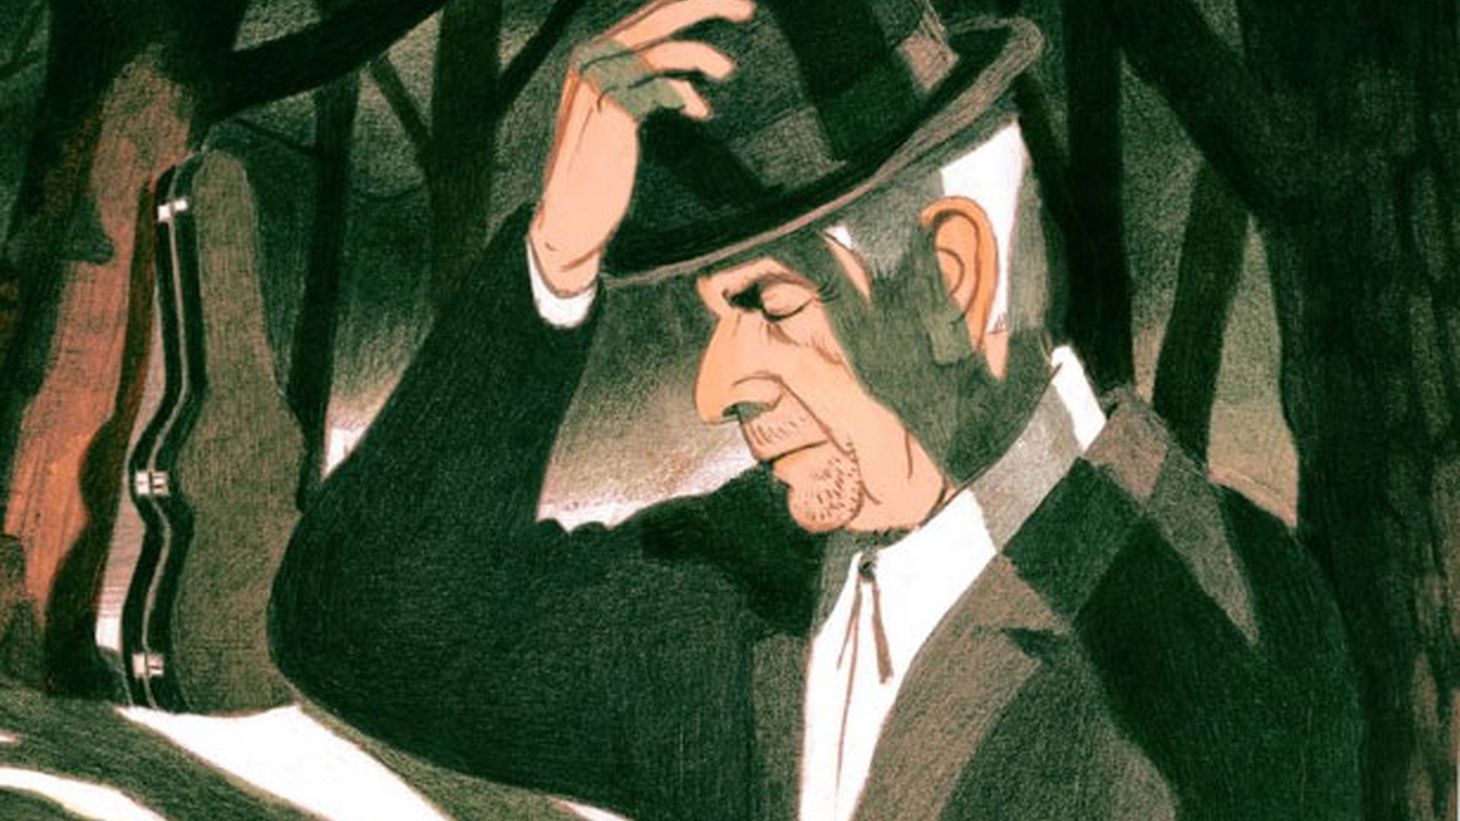 David Remnick's interview with the late Leonard Cohen, who died this week. The great songwriter spoke at length about his writing, overcoming anxiety, and the influence of Judaism on his work.